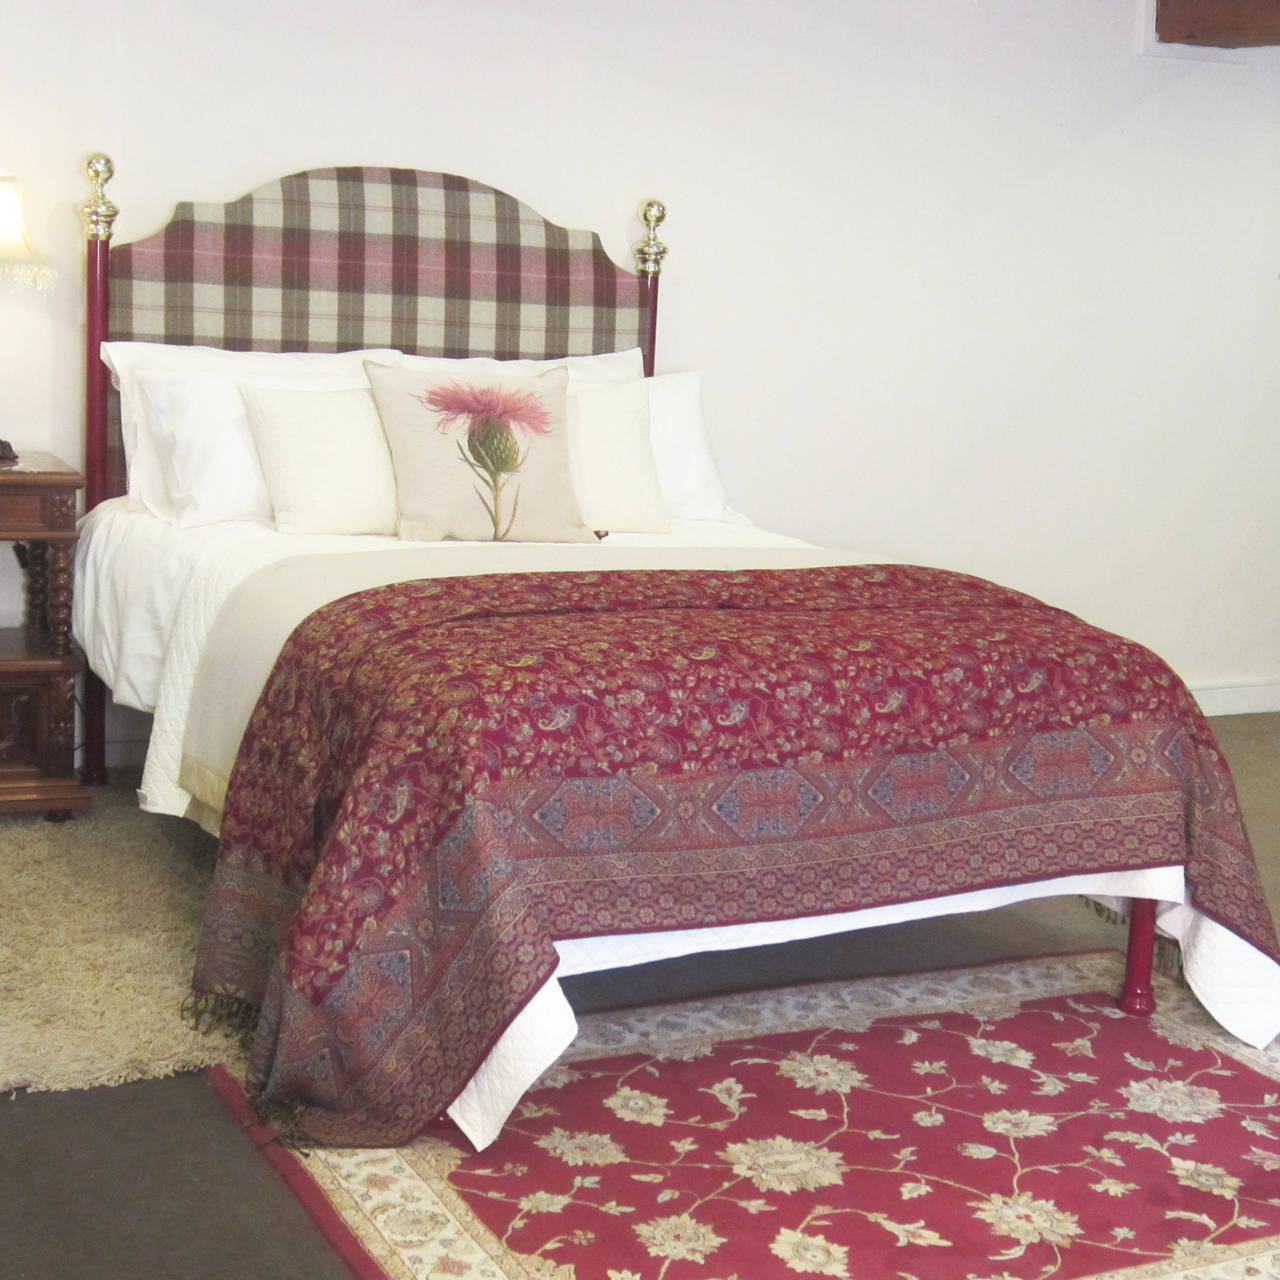 Tartan Covered Platform Bed In Excellent Condition For Sale In Wrexham, GB